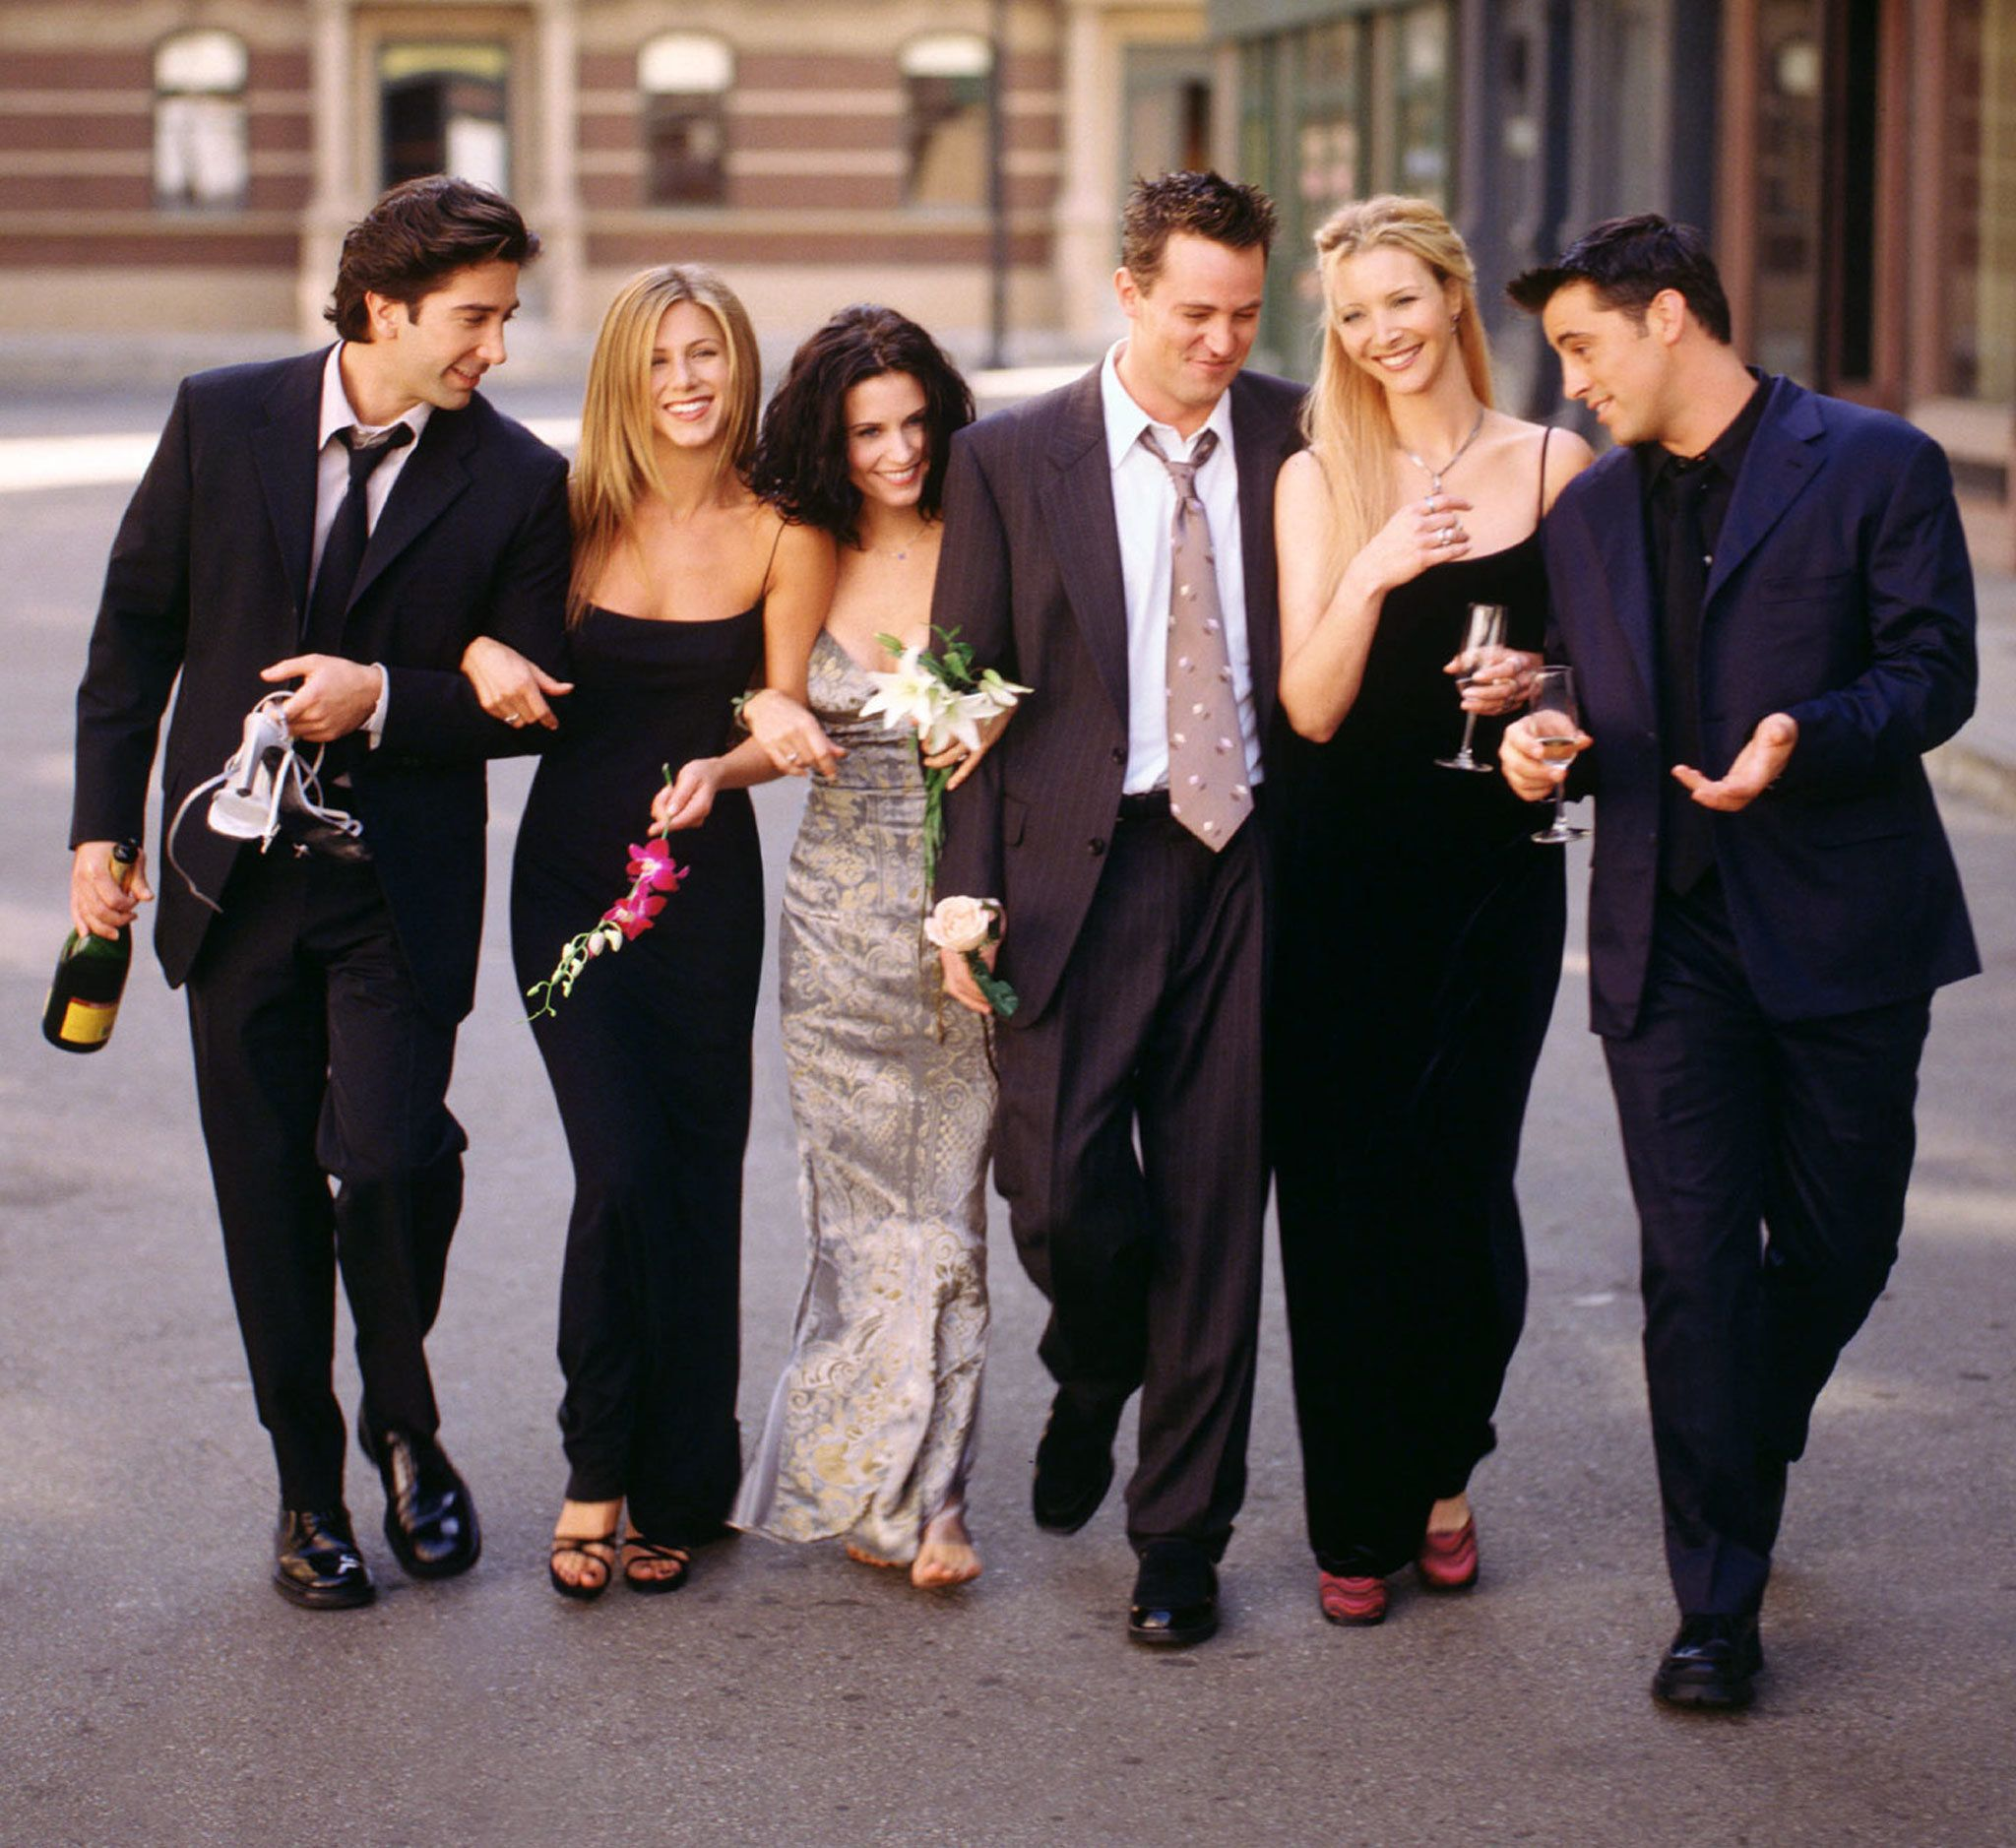 "The cast of NBC's ""Friends"" signed a two-year contract renewal May 14, just a day before the network is to unveil its fall lineup, Warner Bros. Television and NBC announced. This undated publicity picture shows (L-R) David Schwimmer, Jennifer Aniston, Courteney Cox, Matthew Perry, Lisa Kudrow and Matt LeBlanc. ssf/HO/Photo by Warner Bros.  SF/HB"